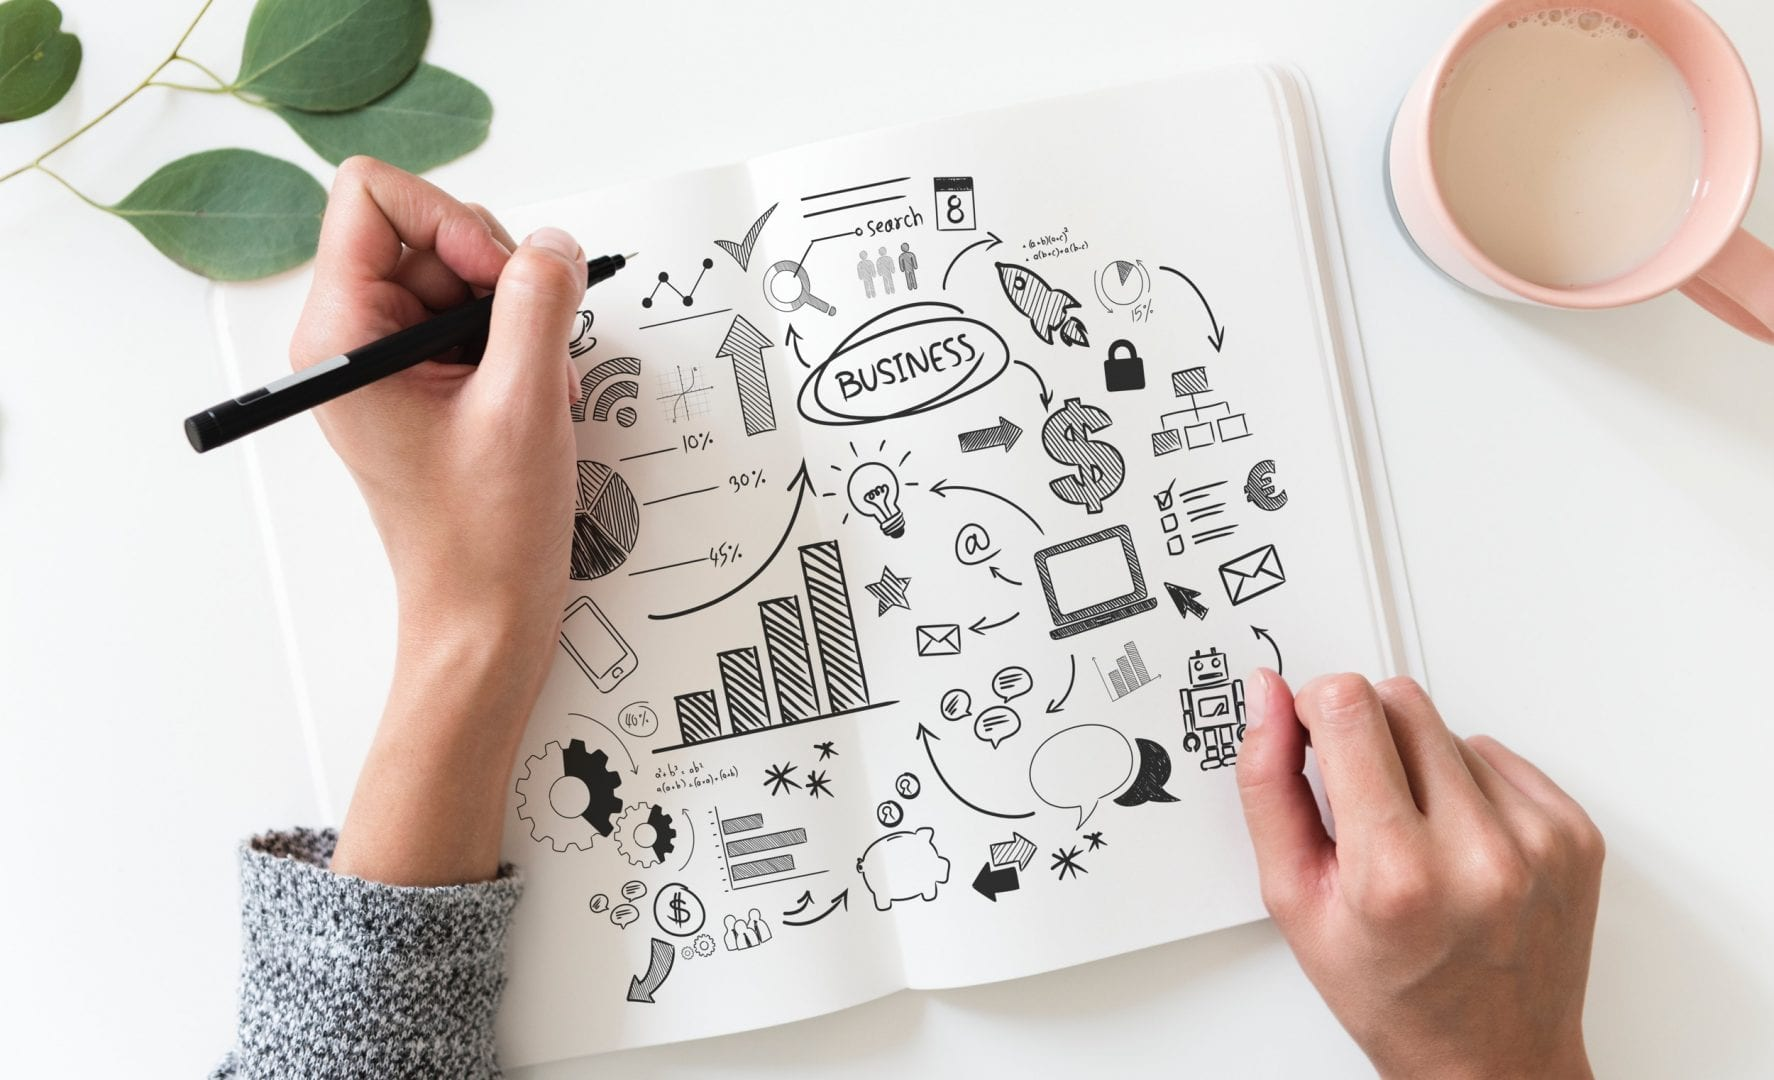 Marketing Strategy for eBuilt Business